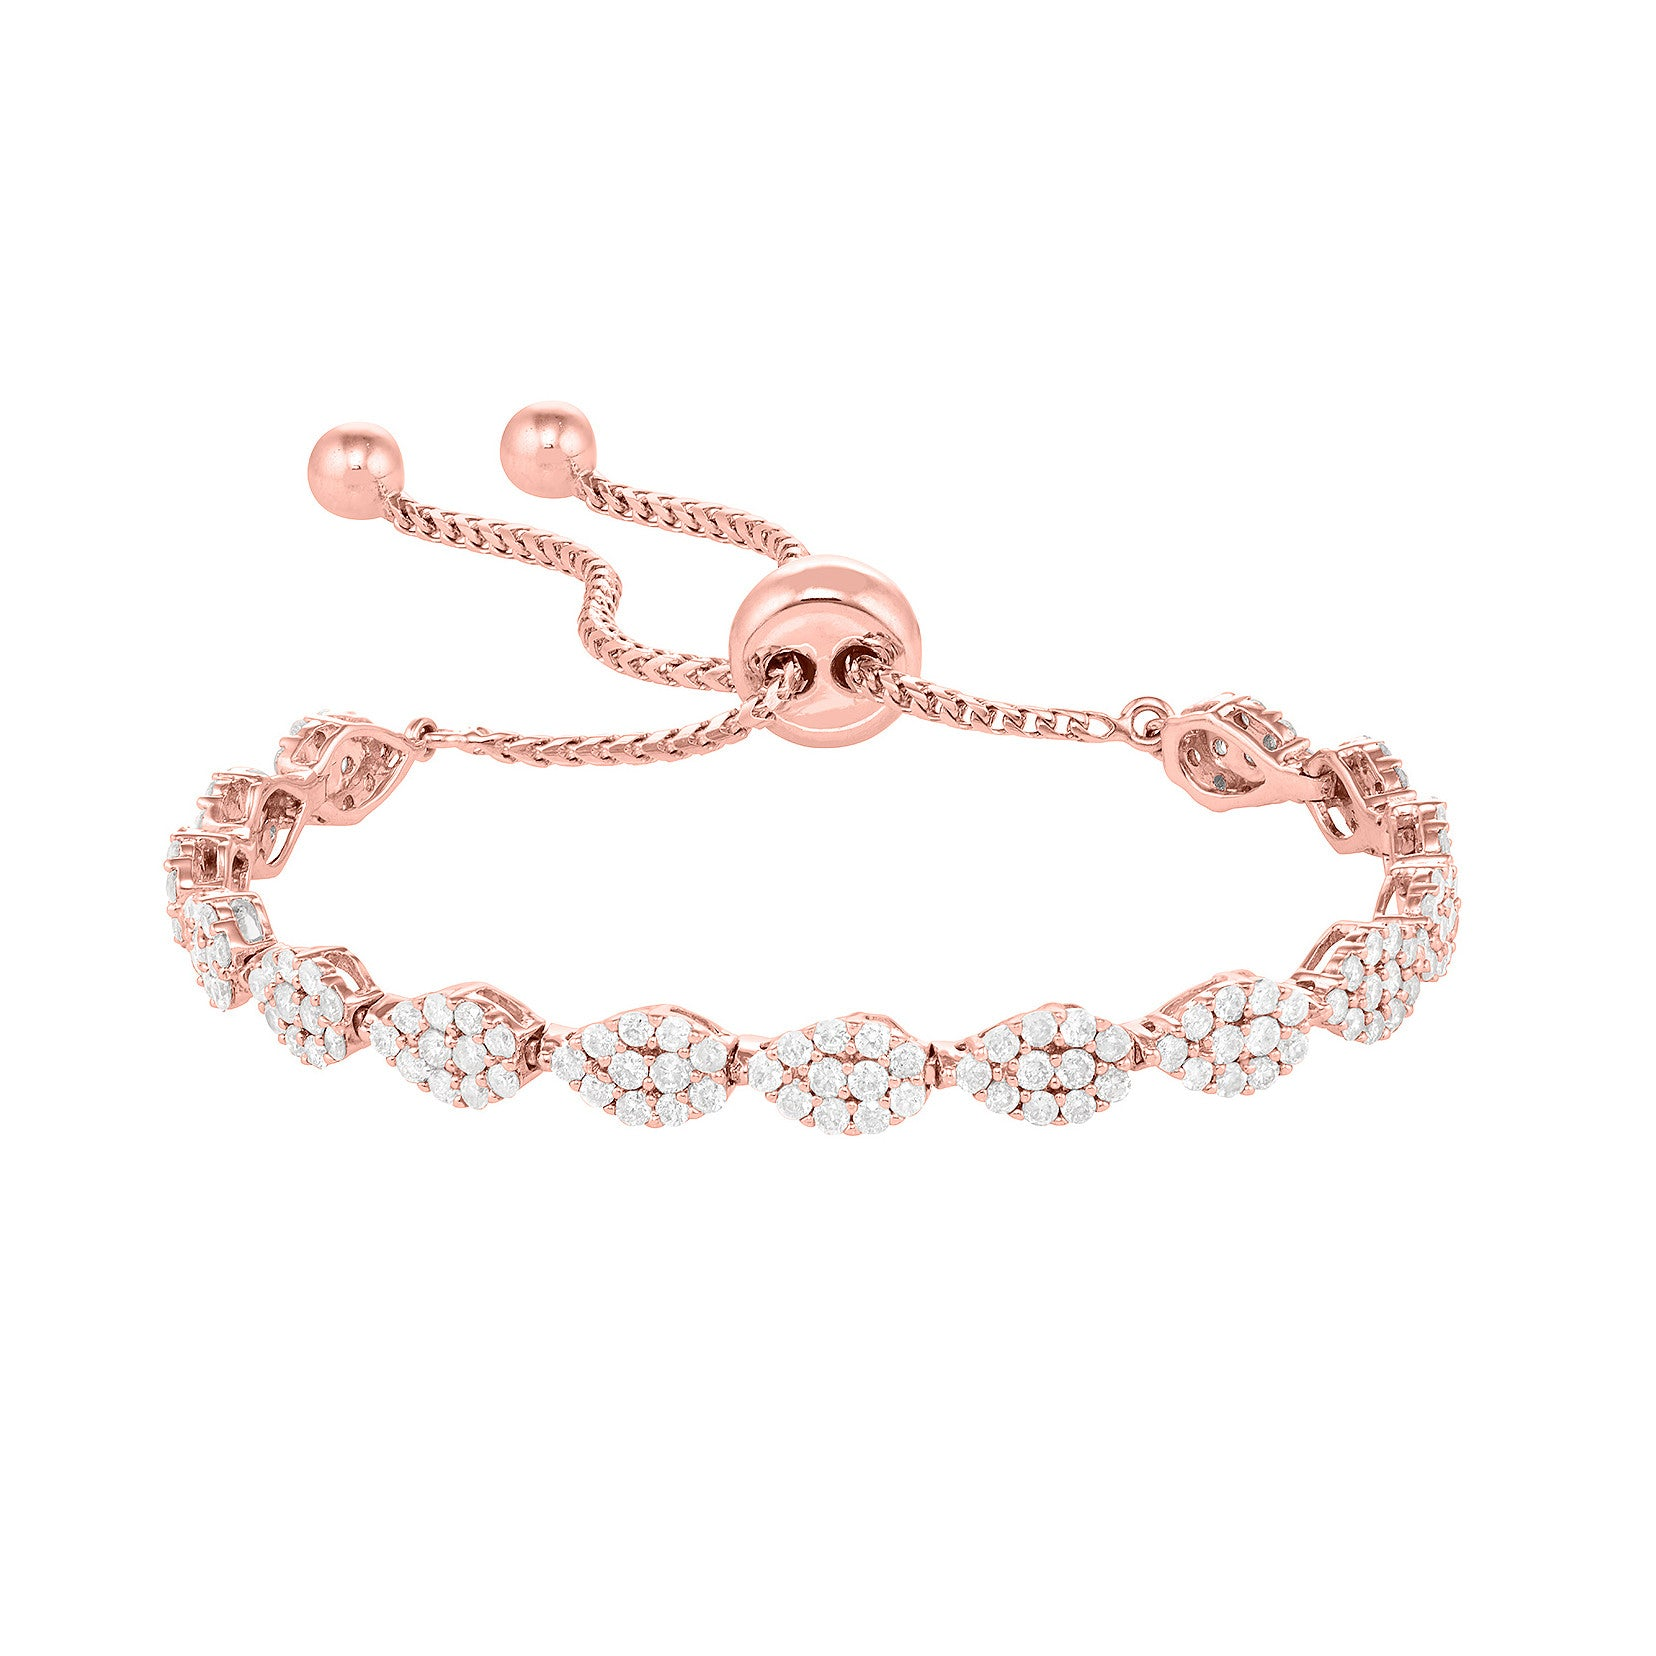 Orin Pear Shaped Diamond Flexible and Adjustable Bracelet